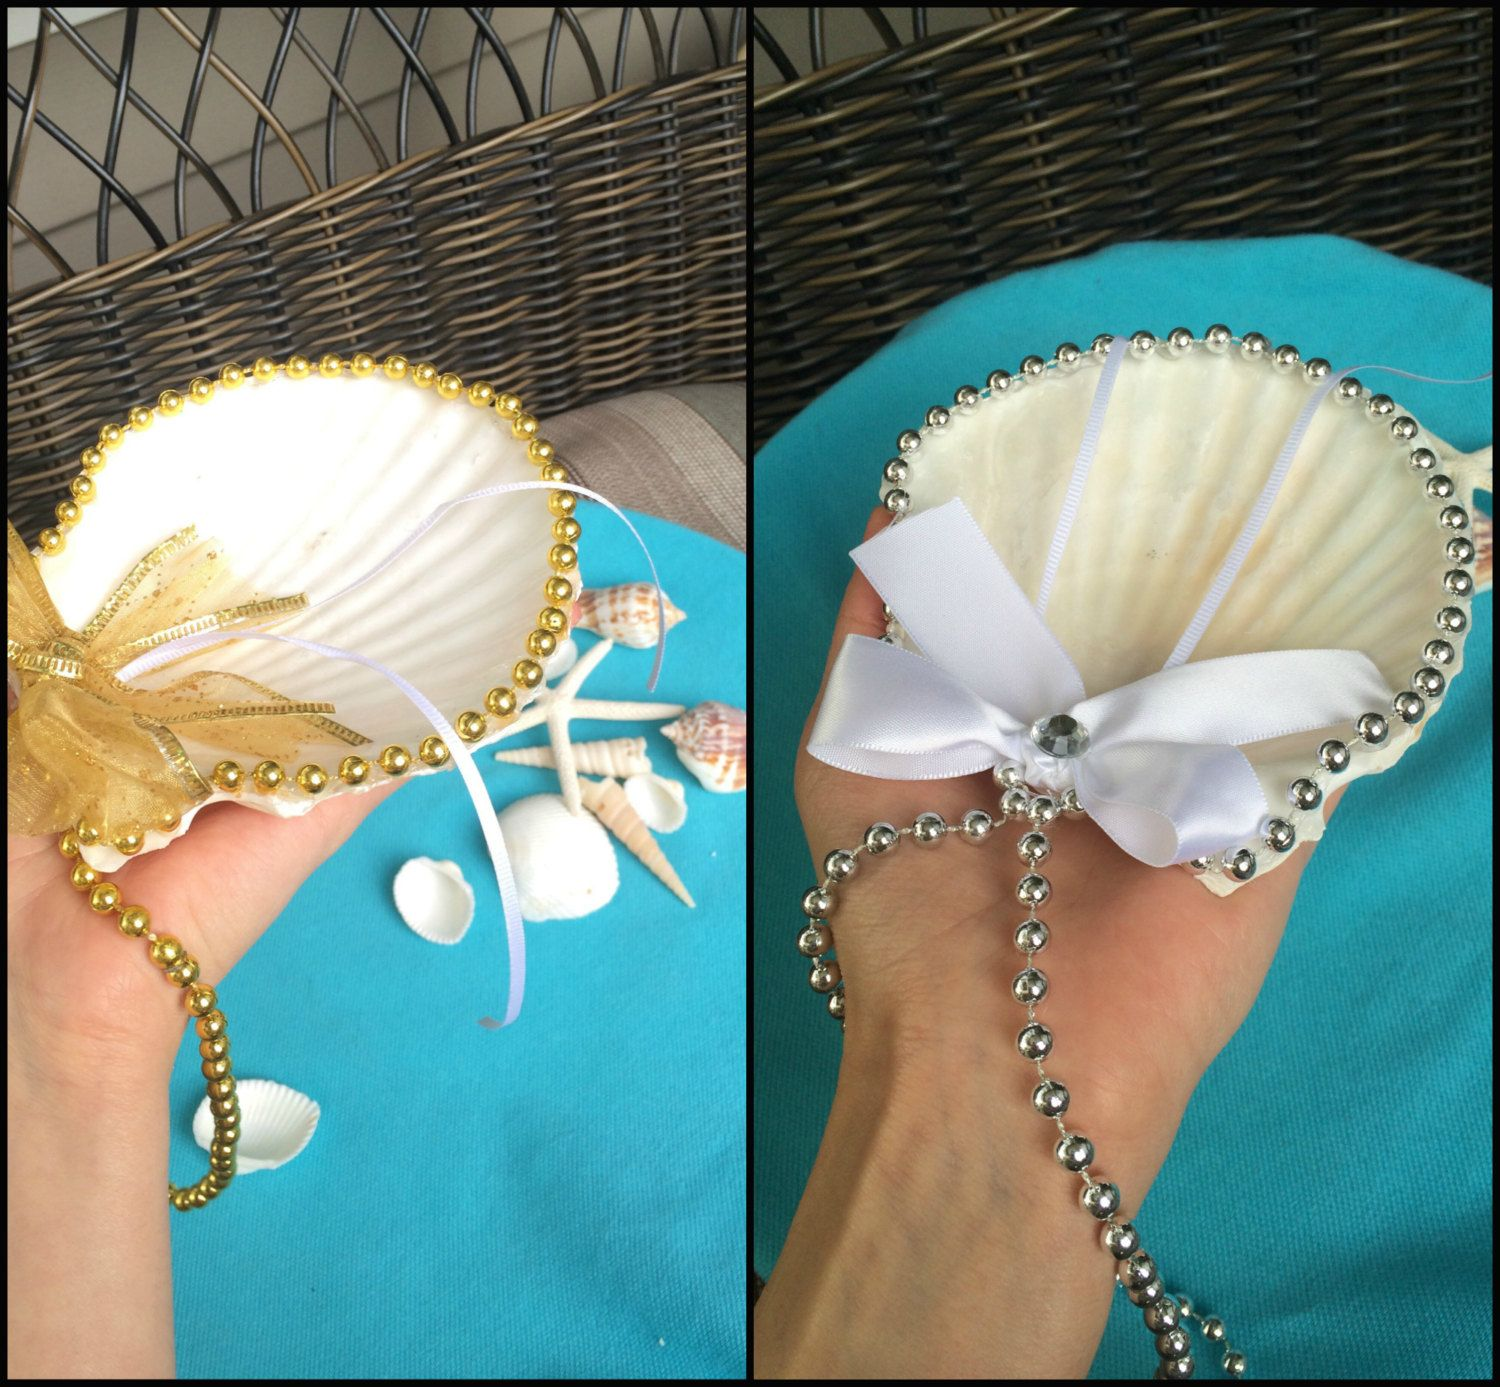 Silver or Gold seashell ring holder for beach themed wedding with